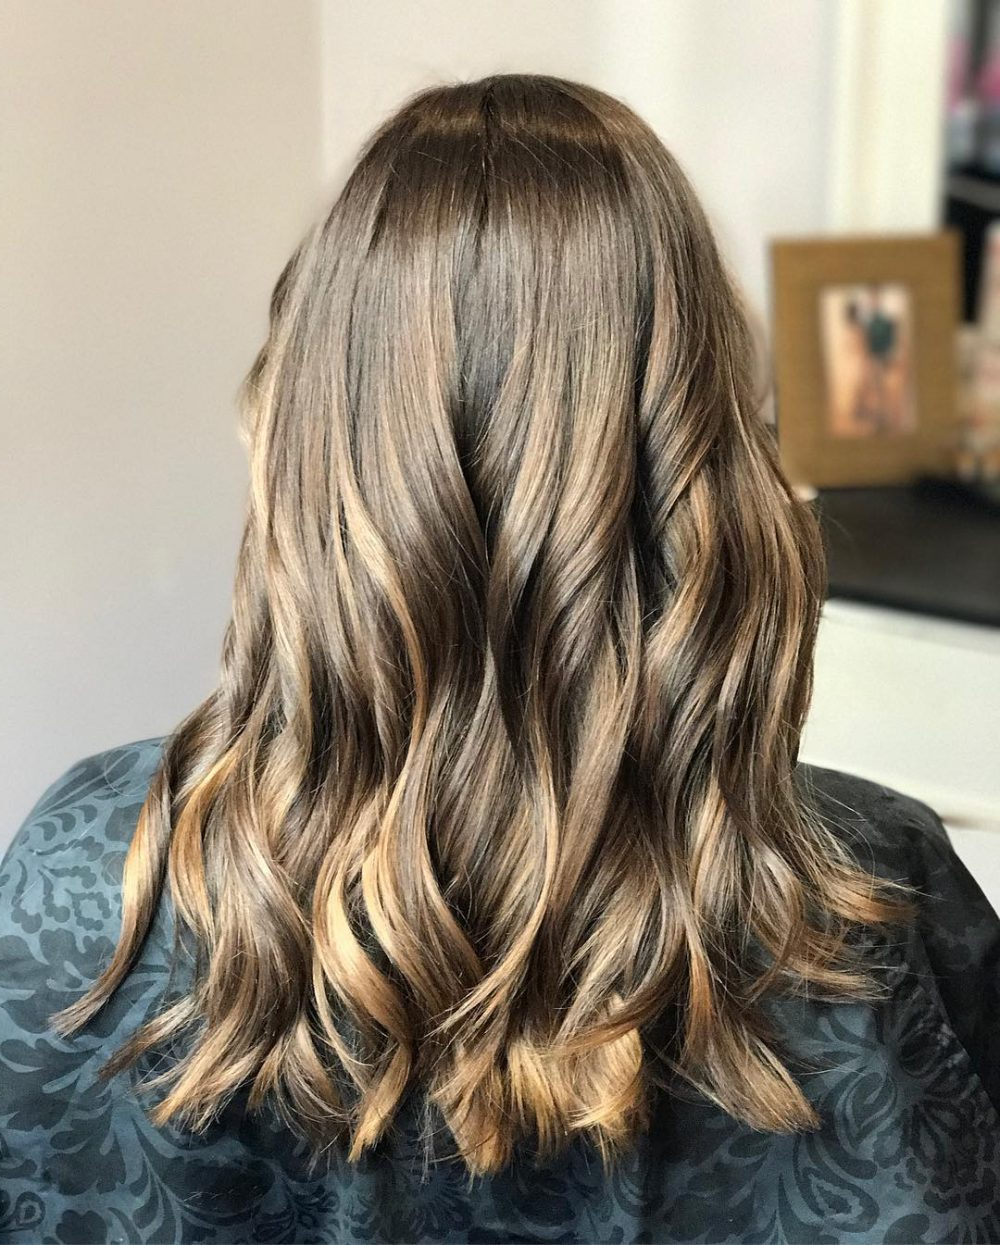 34 Sweetest Caramel Highlights On Light To Dark Brown Hair (2018) With Short Bob Hairstyles With Dimensional Coloring (View 8 of 20)